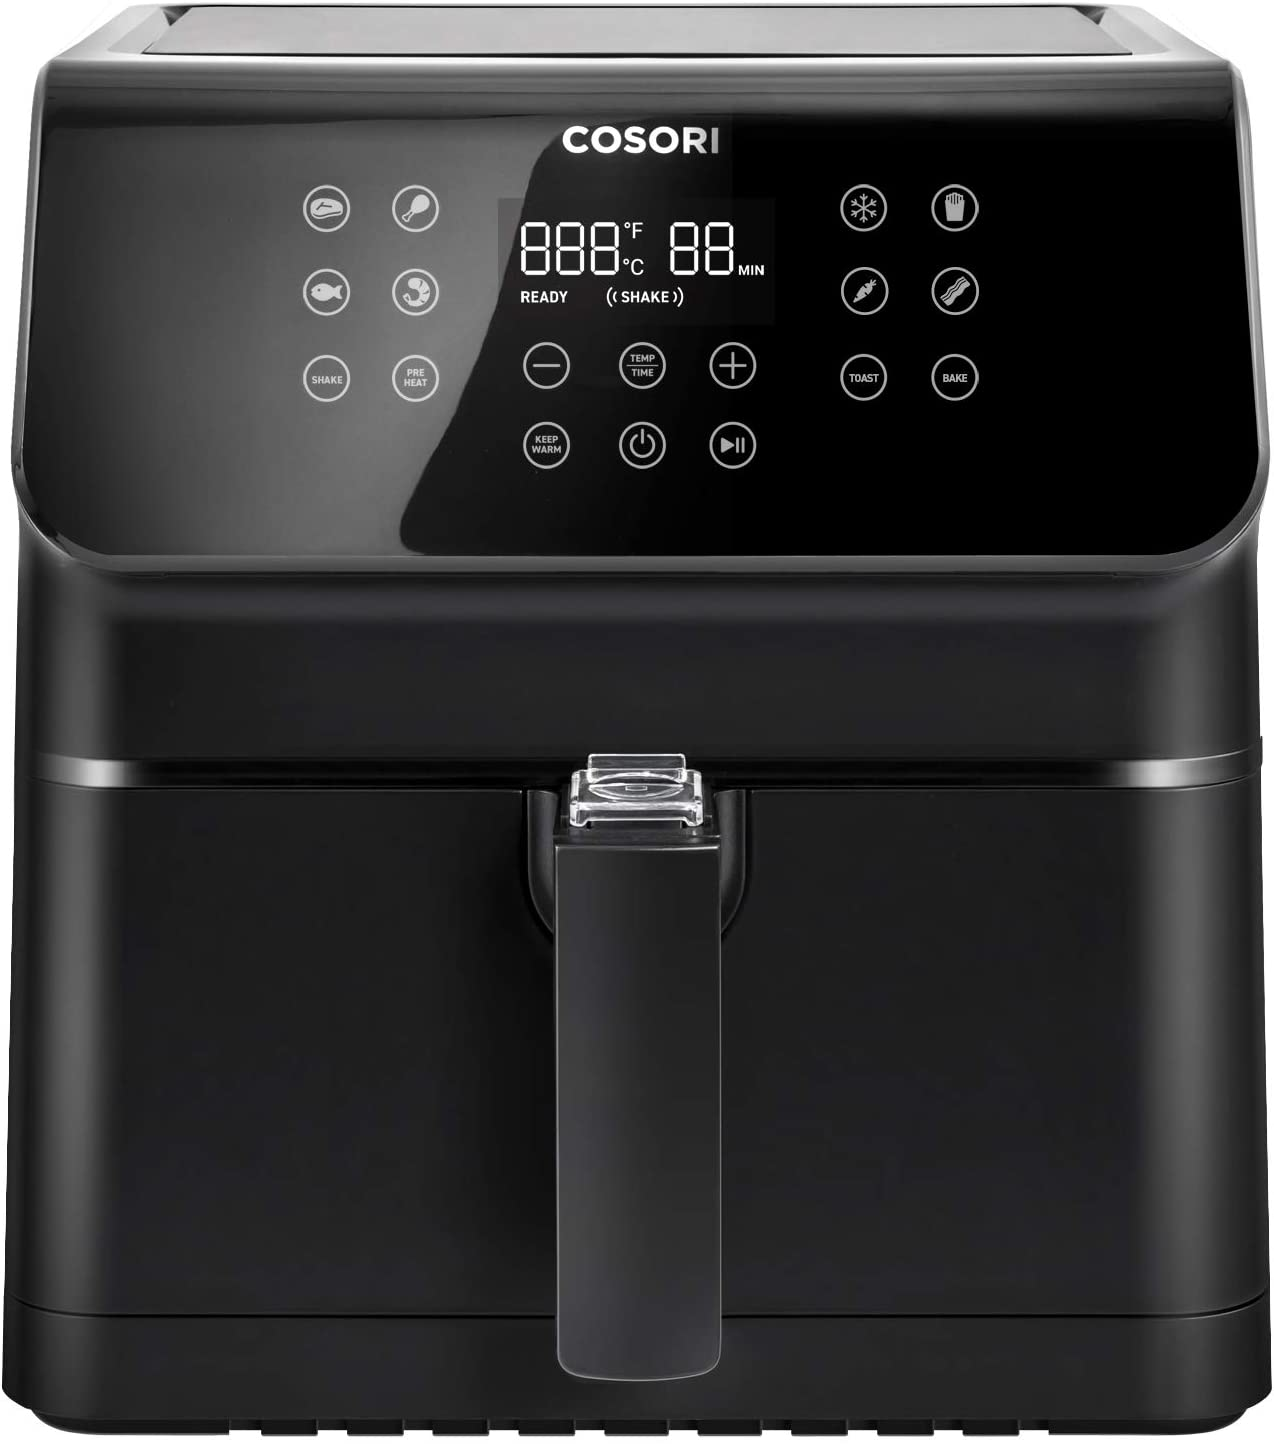 COSORI Air Fryer, Large XL 5.8 Quart 1700-Watt Air Fryer Oven & Oilless Cooker with Cookbook(100 Recipes) LED Digital Tilt One-Touchscreen with Preheat, Customizable 10 Presets & Shake Reminder, Black